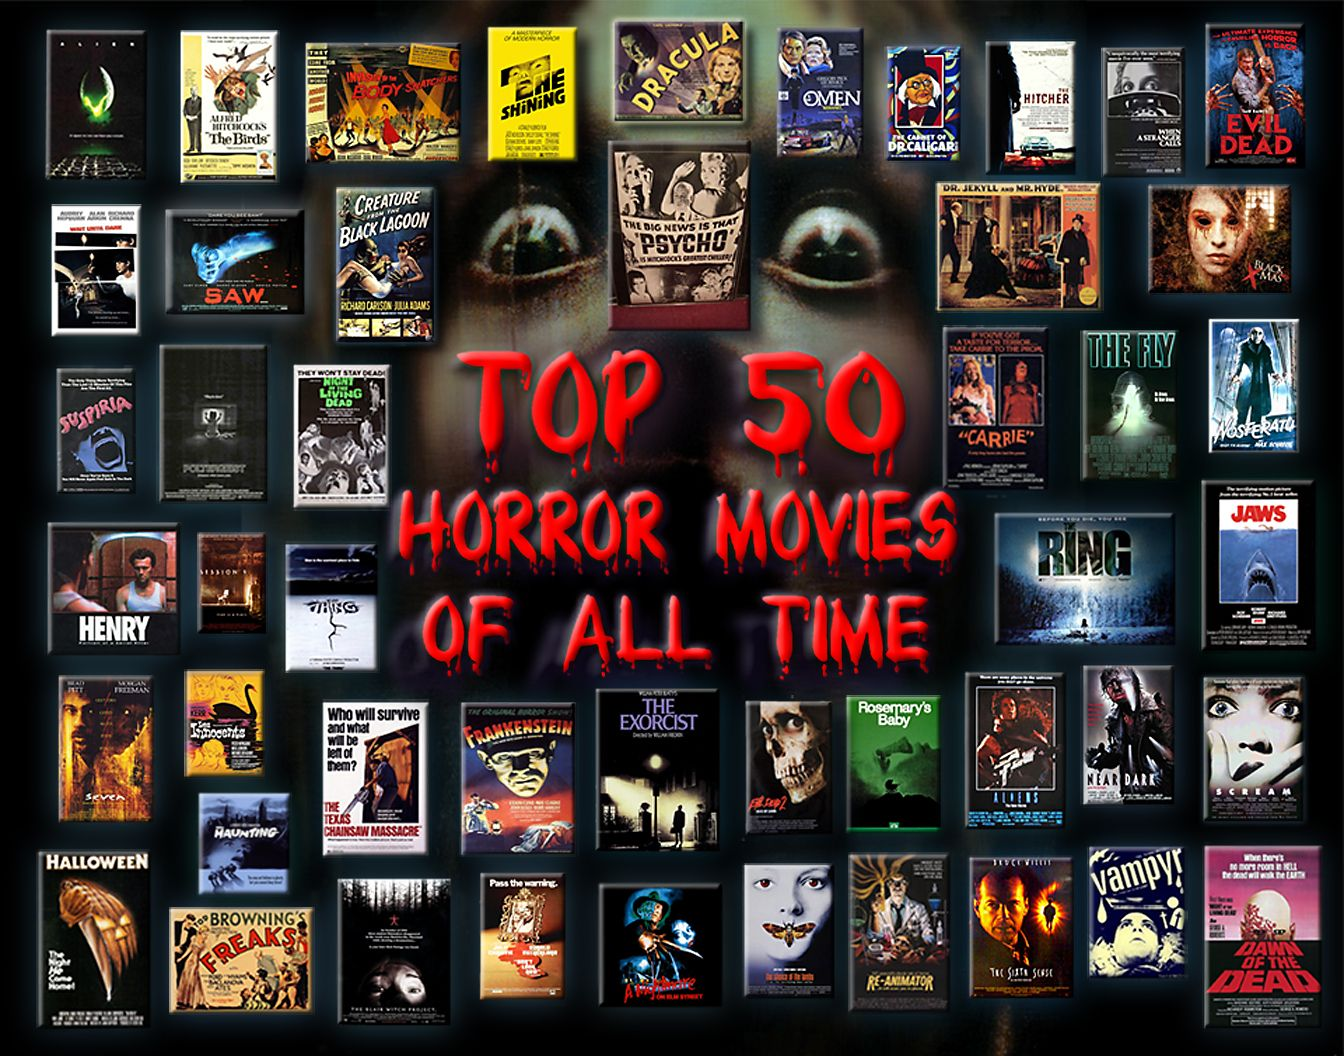 Top-50-Horror-Movies-of-All-Time-horror-movies-22484243-1344-1056.jpg